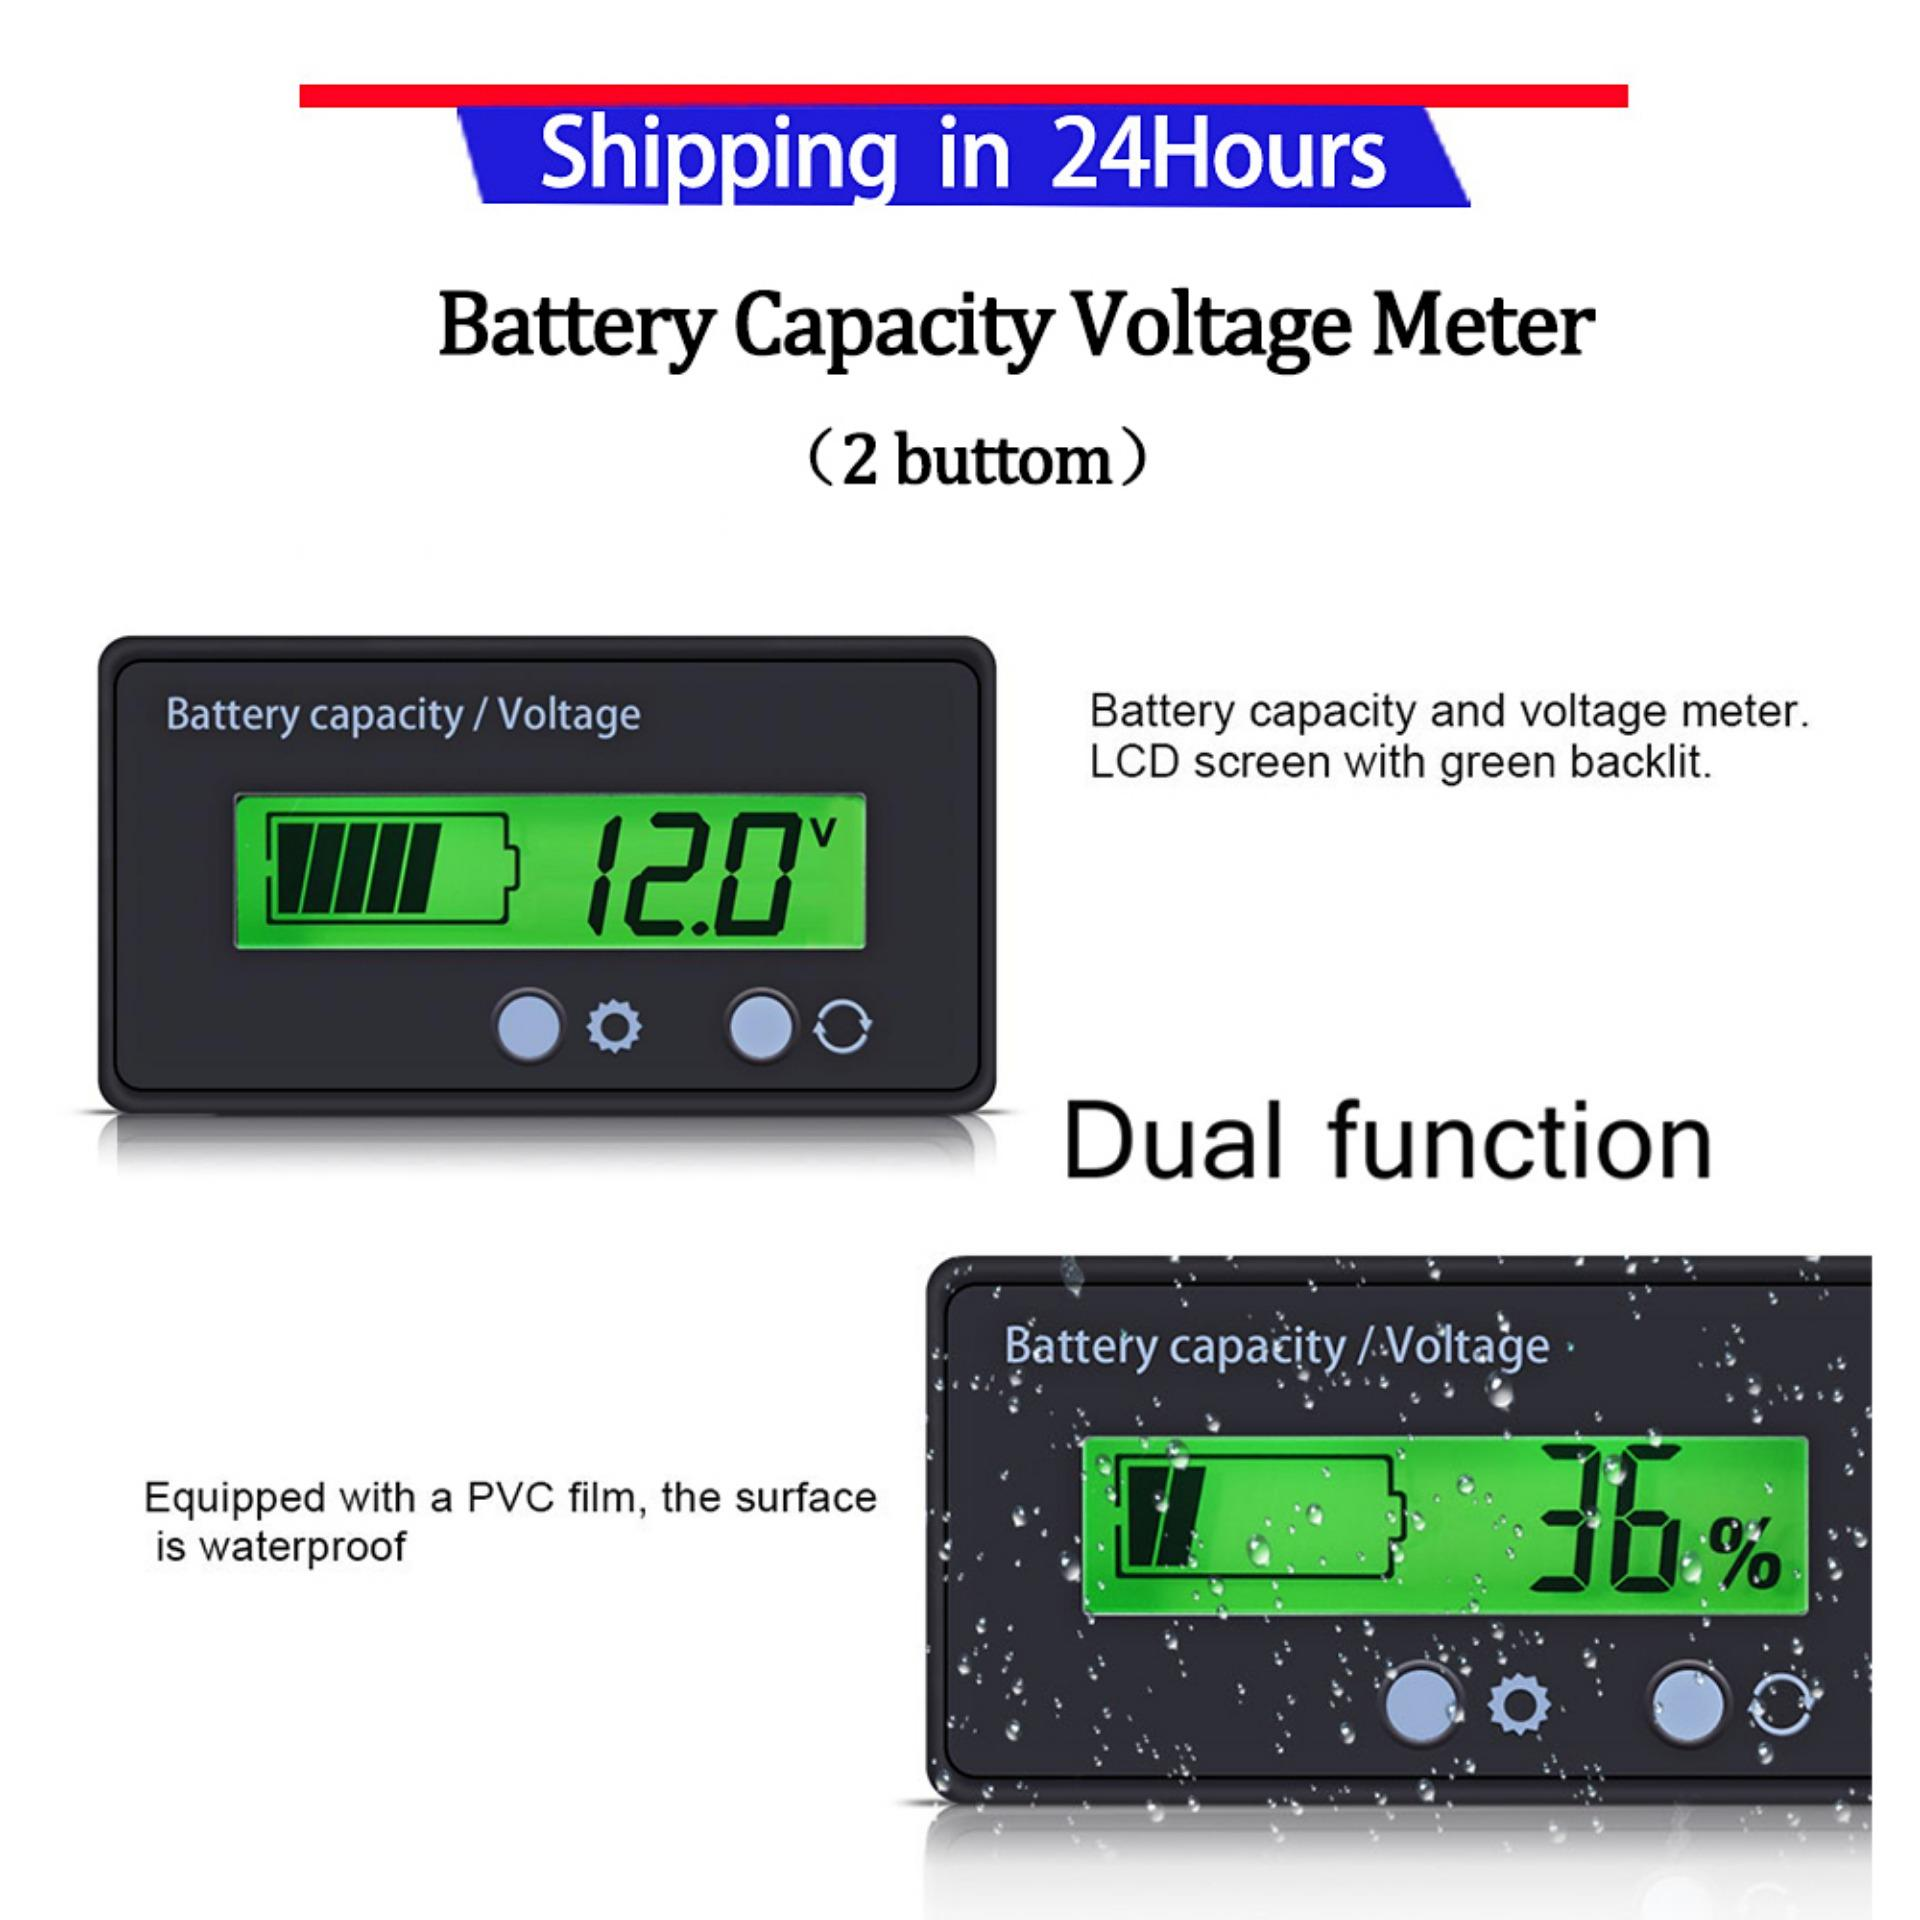 Battery Voltage Indicator Buy Sell Cheapest 12v Tester Best Quality Product Deals Promotiongreen Capacity Displaybattery Monitor Voltmeter